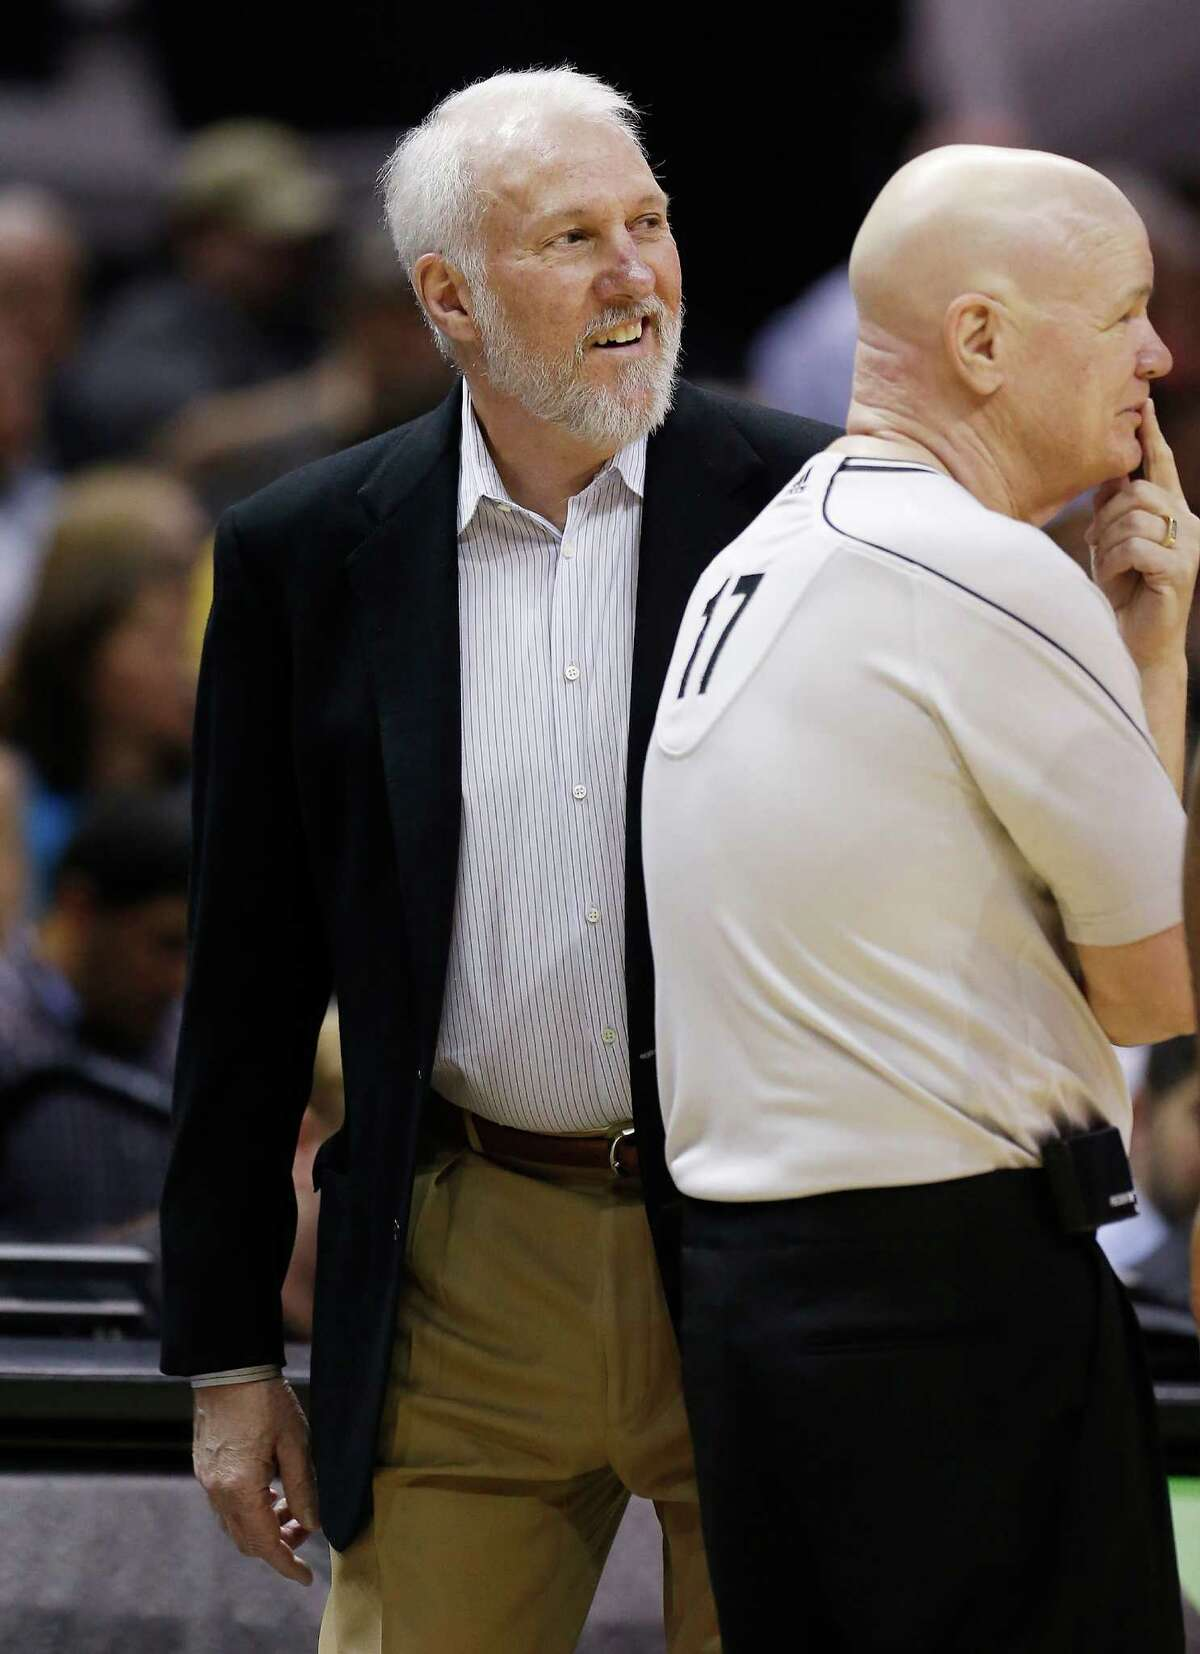 Spurs coach Gregg Popovich smiles beside official Joey Crawford (17) during the game against the Houston Rockets at the AT&T Center on Wednesday, Apr. 8, 2015. (Kin Man Hui/San Antonio Express-News)